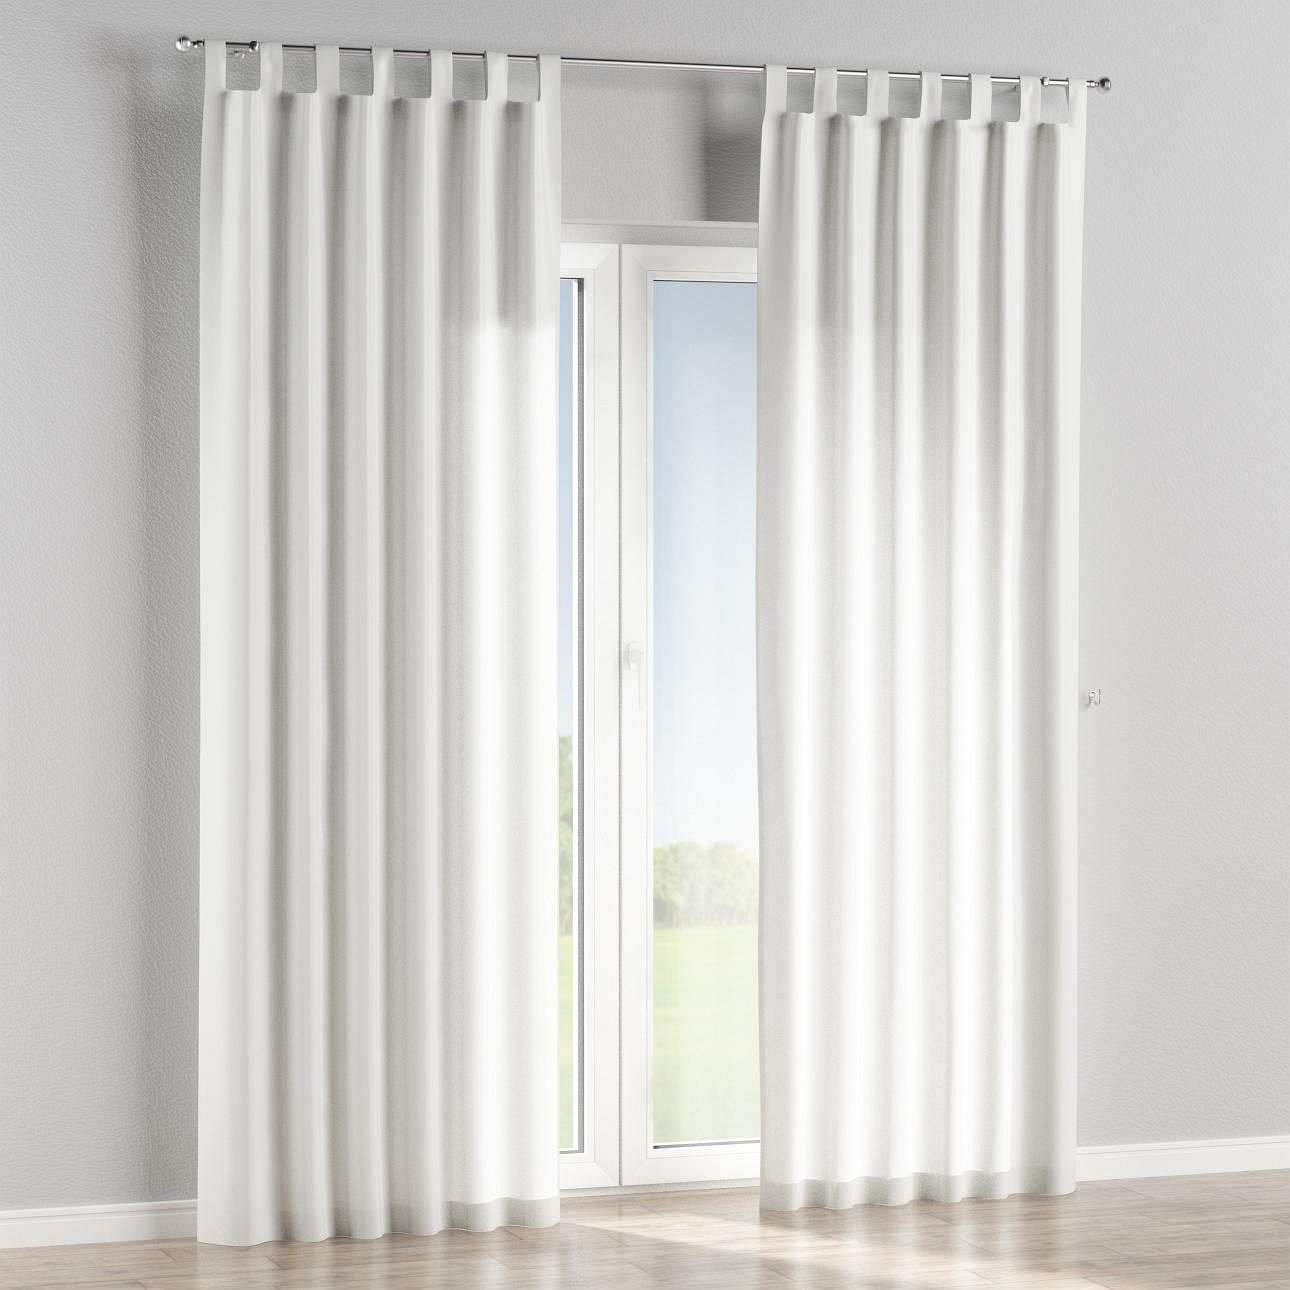 Tab top curtains in collection Odisea, fabric: 411-01